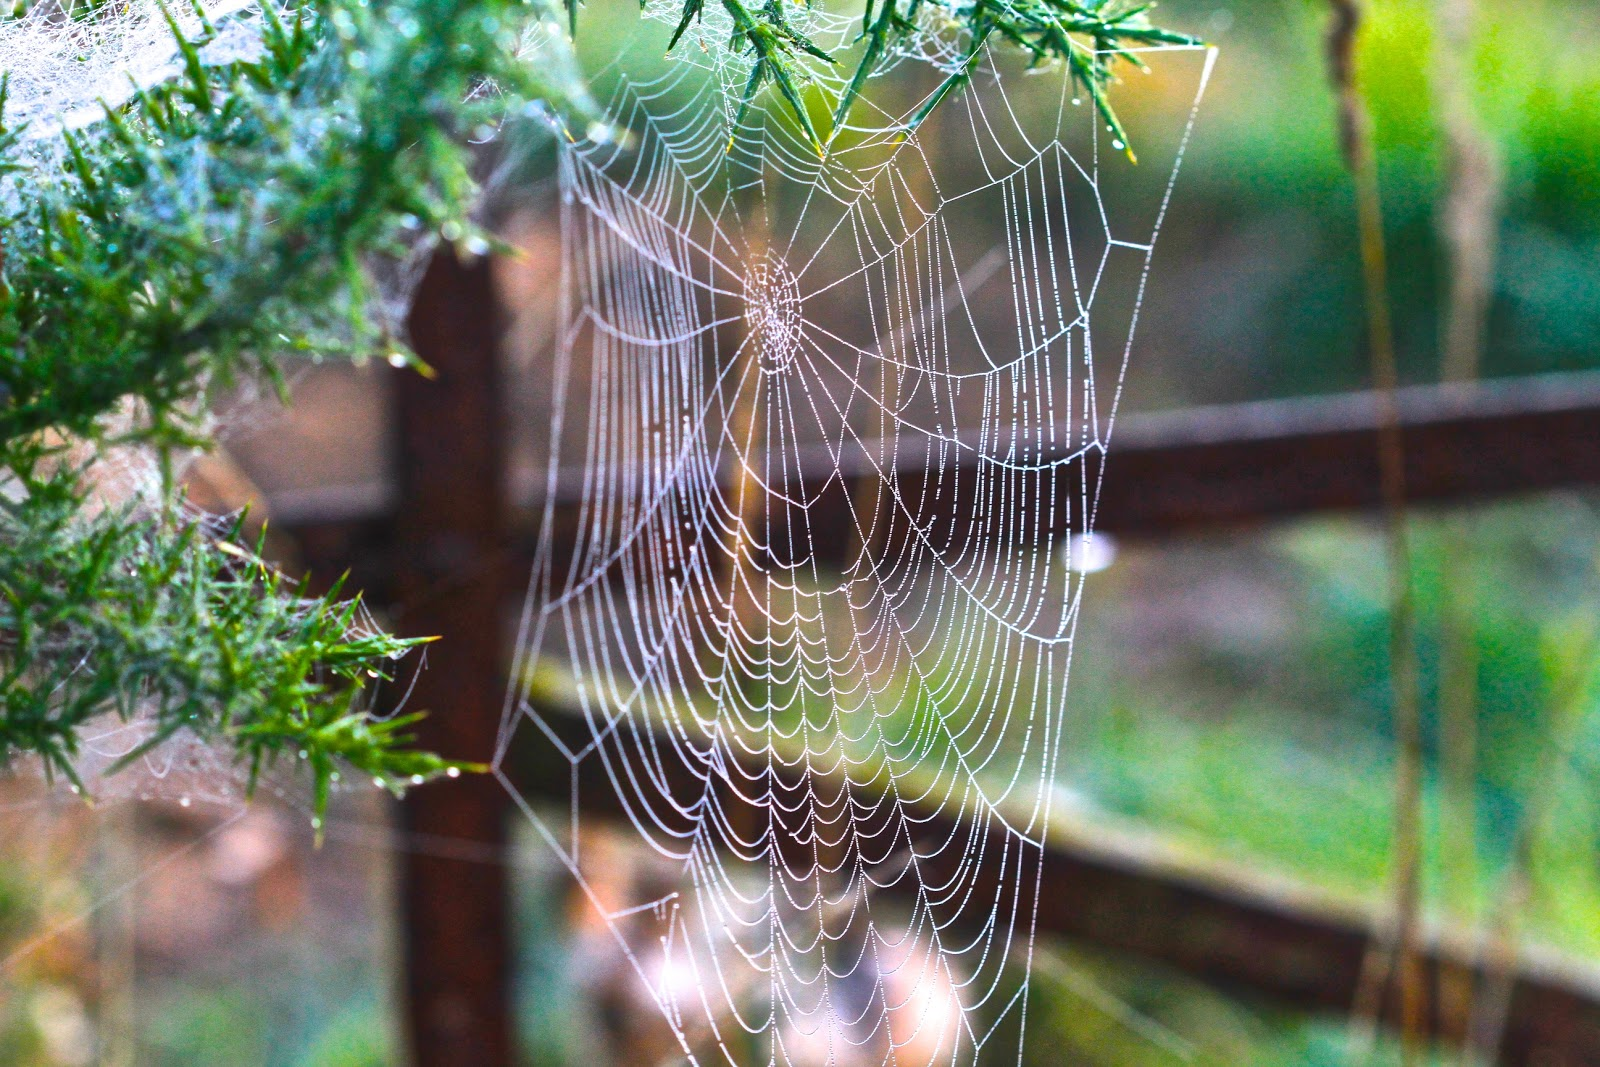 Early morning web magic